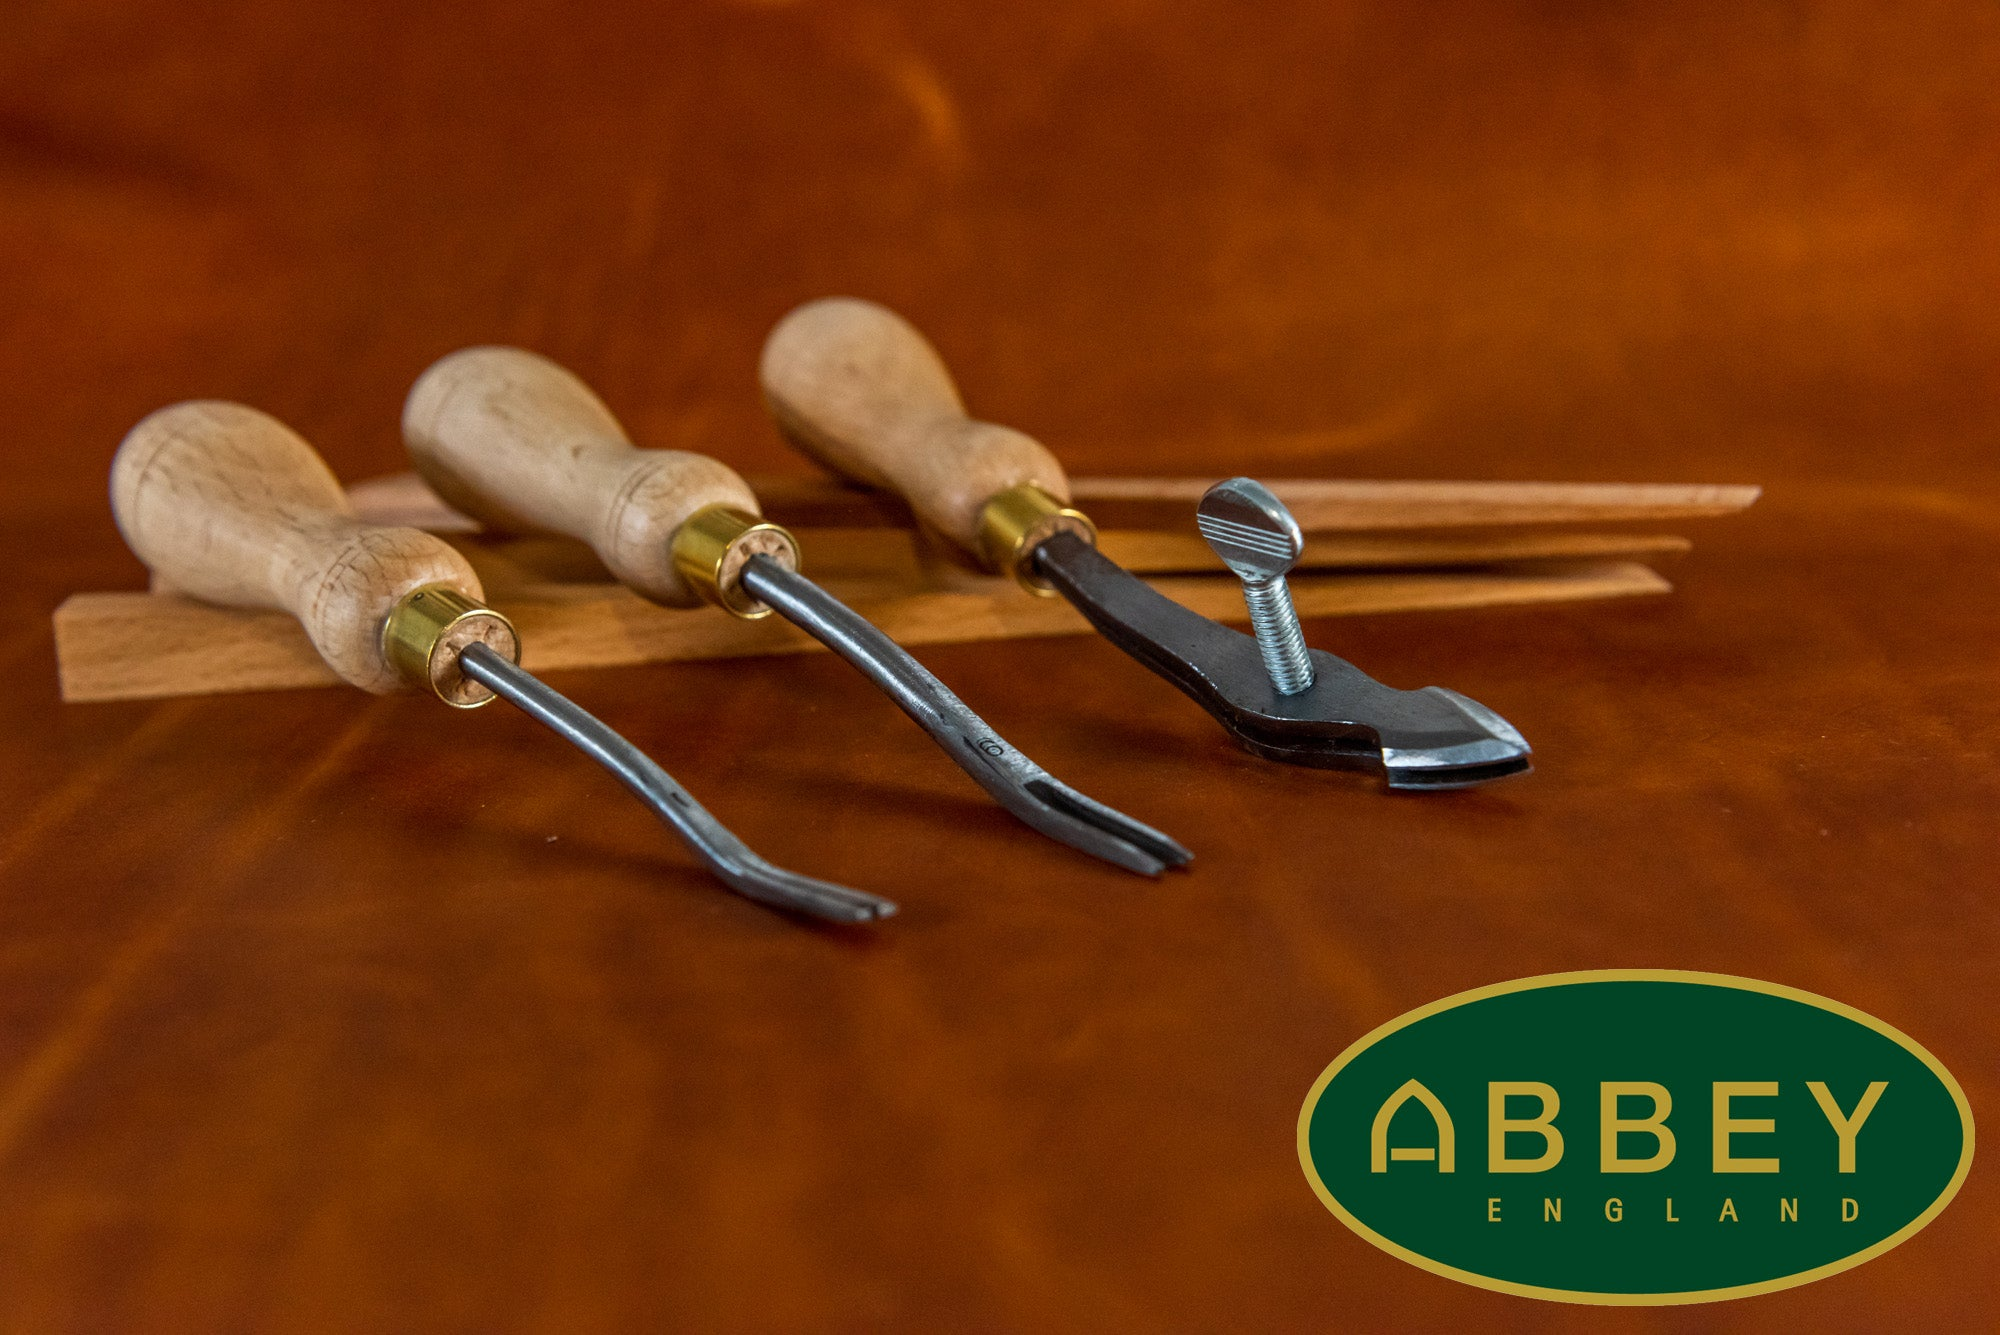 Leathecraft tools from Abbey England